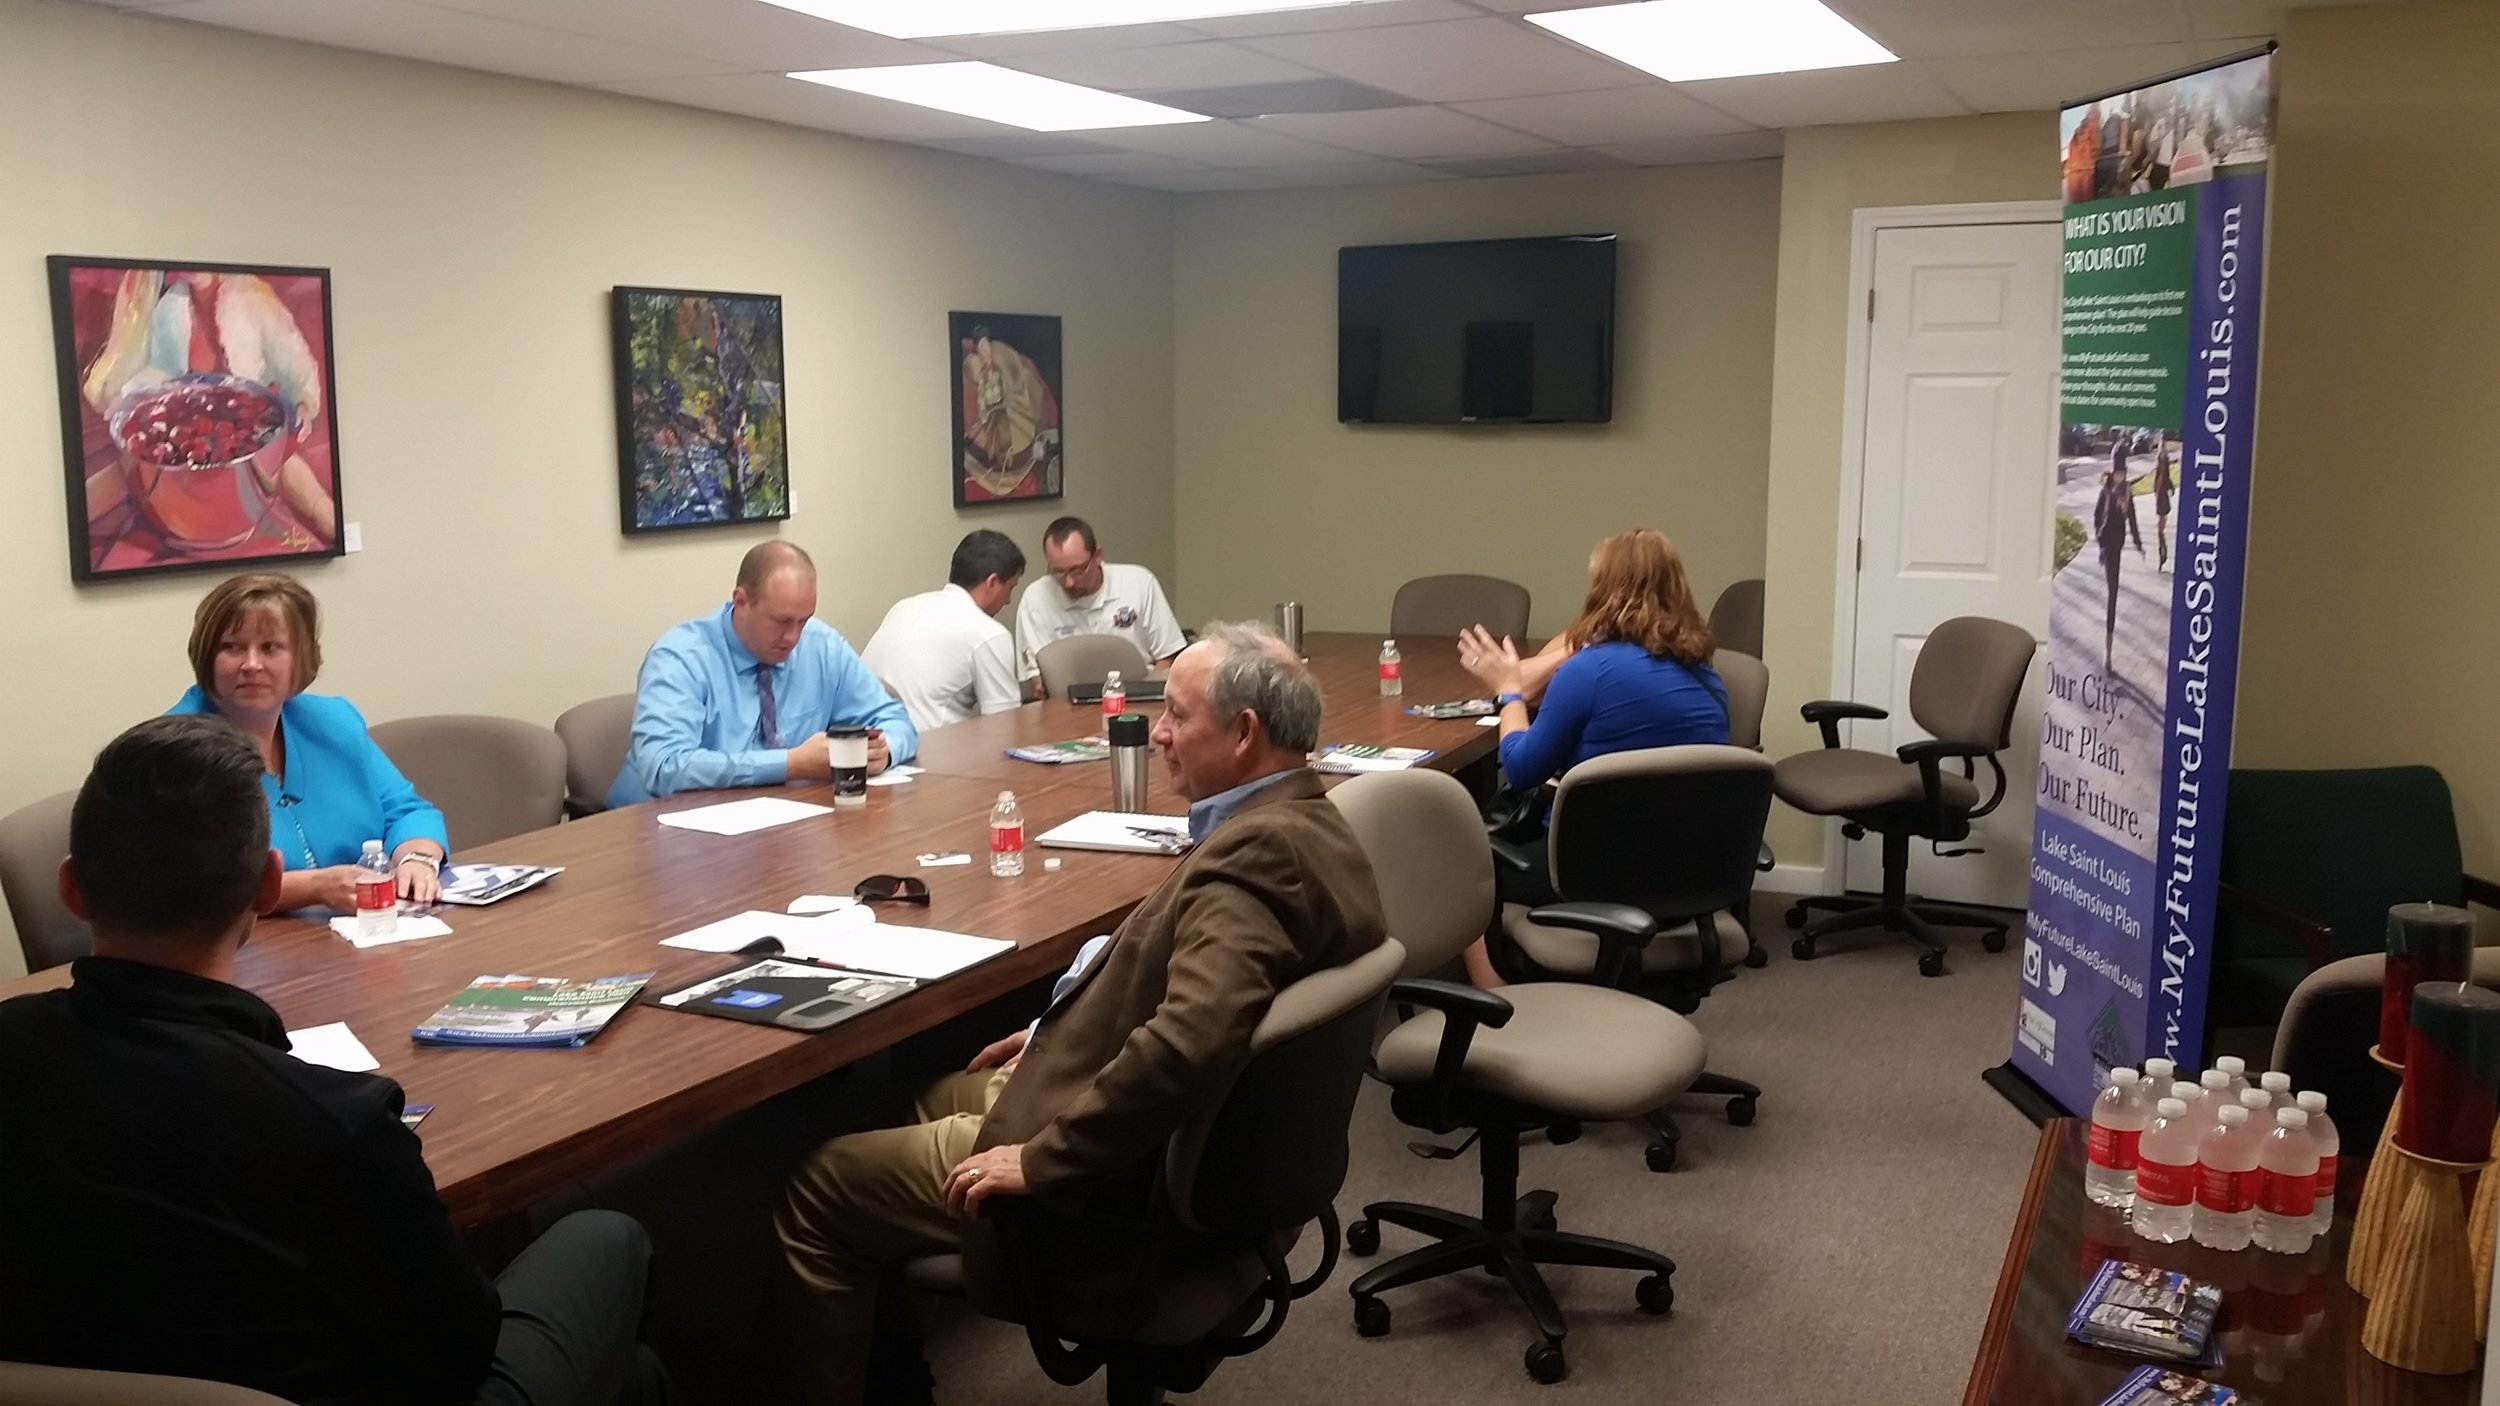 A focus group meeting with the Chamber of Commerce.